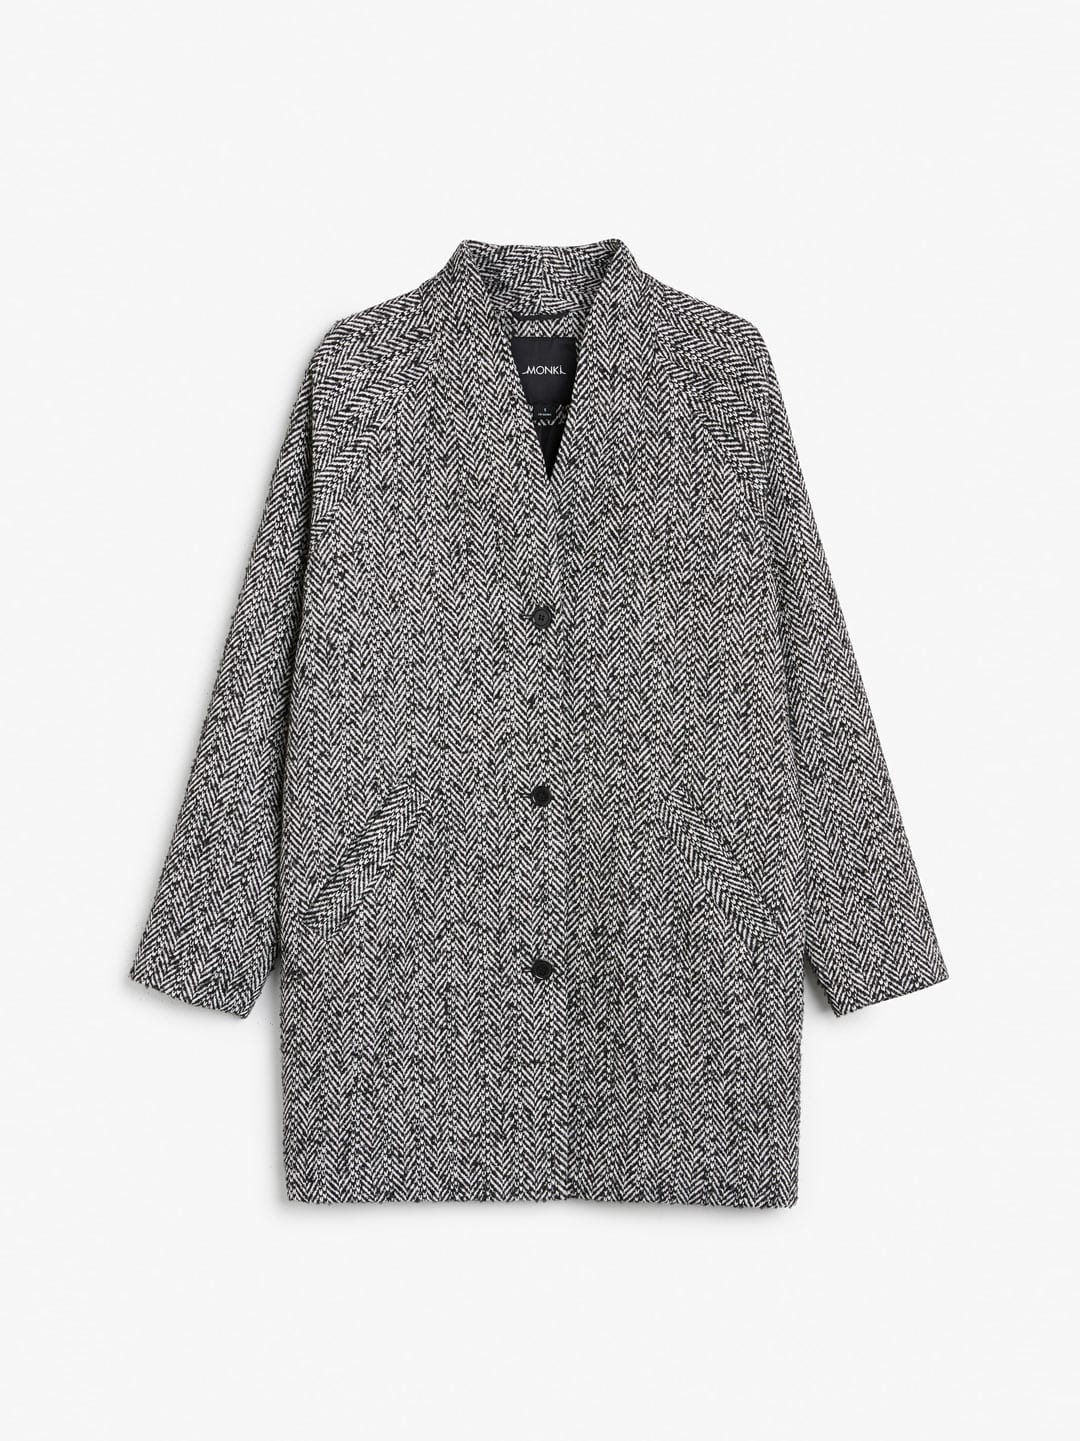 Best Winter Coats | Monki Shawl-Neck Herringbone Coat